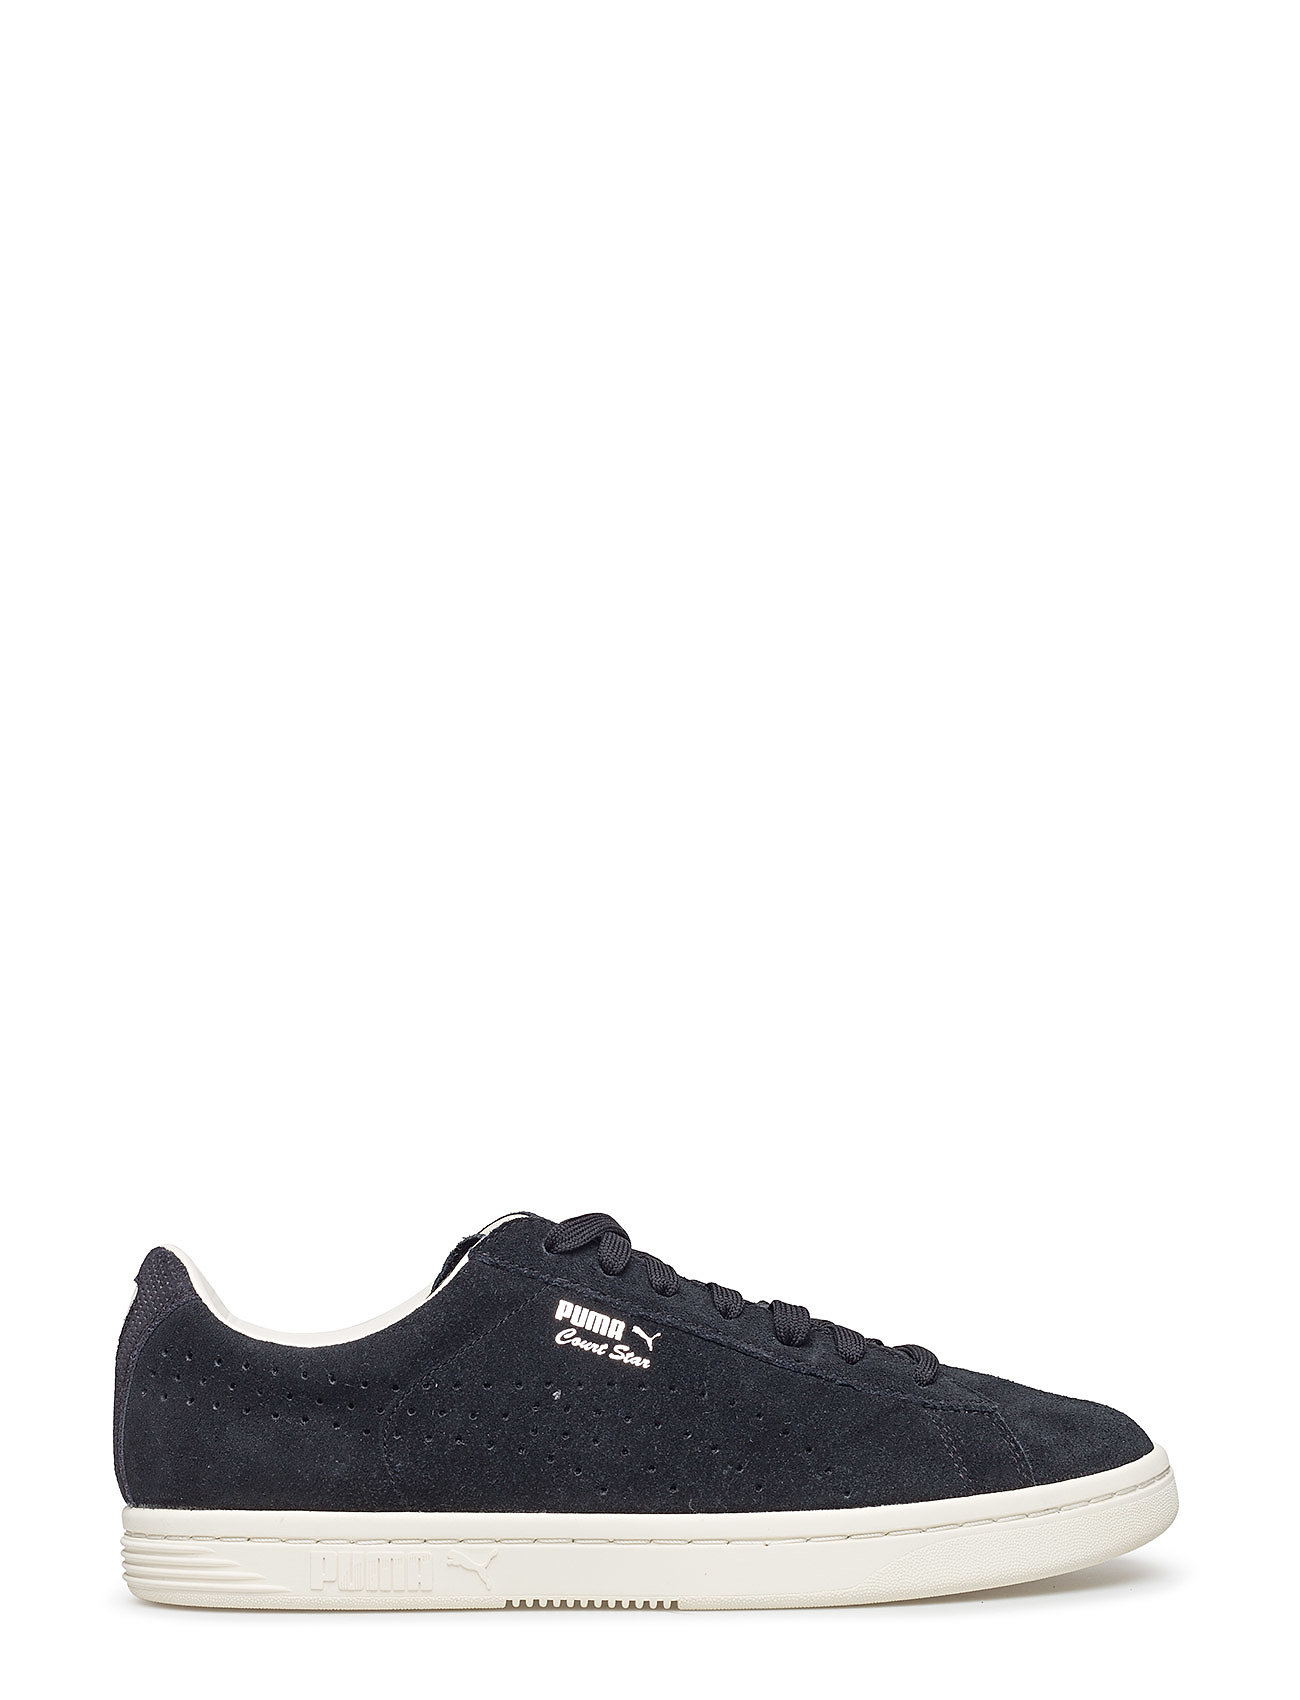 Court Star Suede Interest Shoes Sport Shoes Sort PUMA